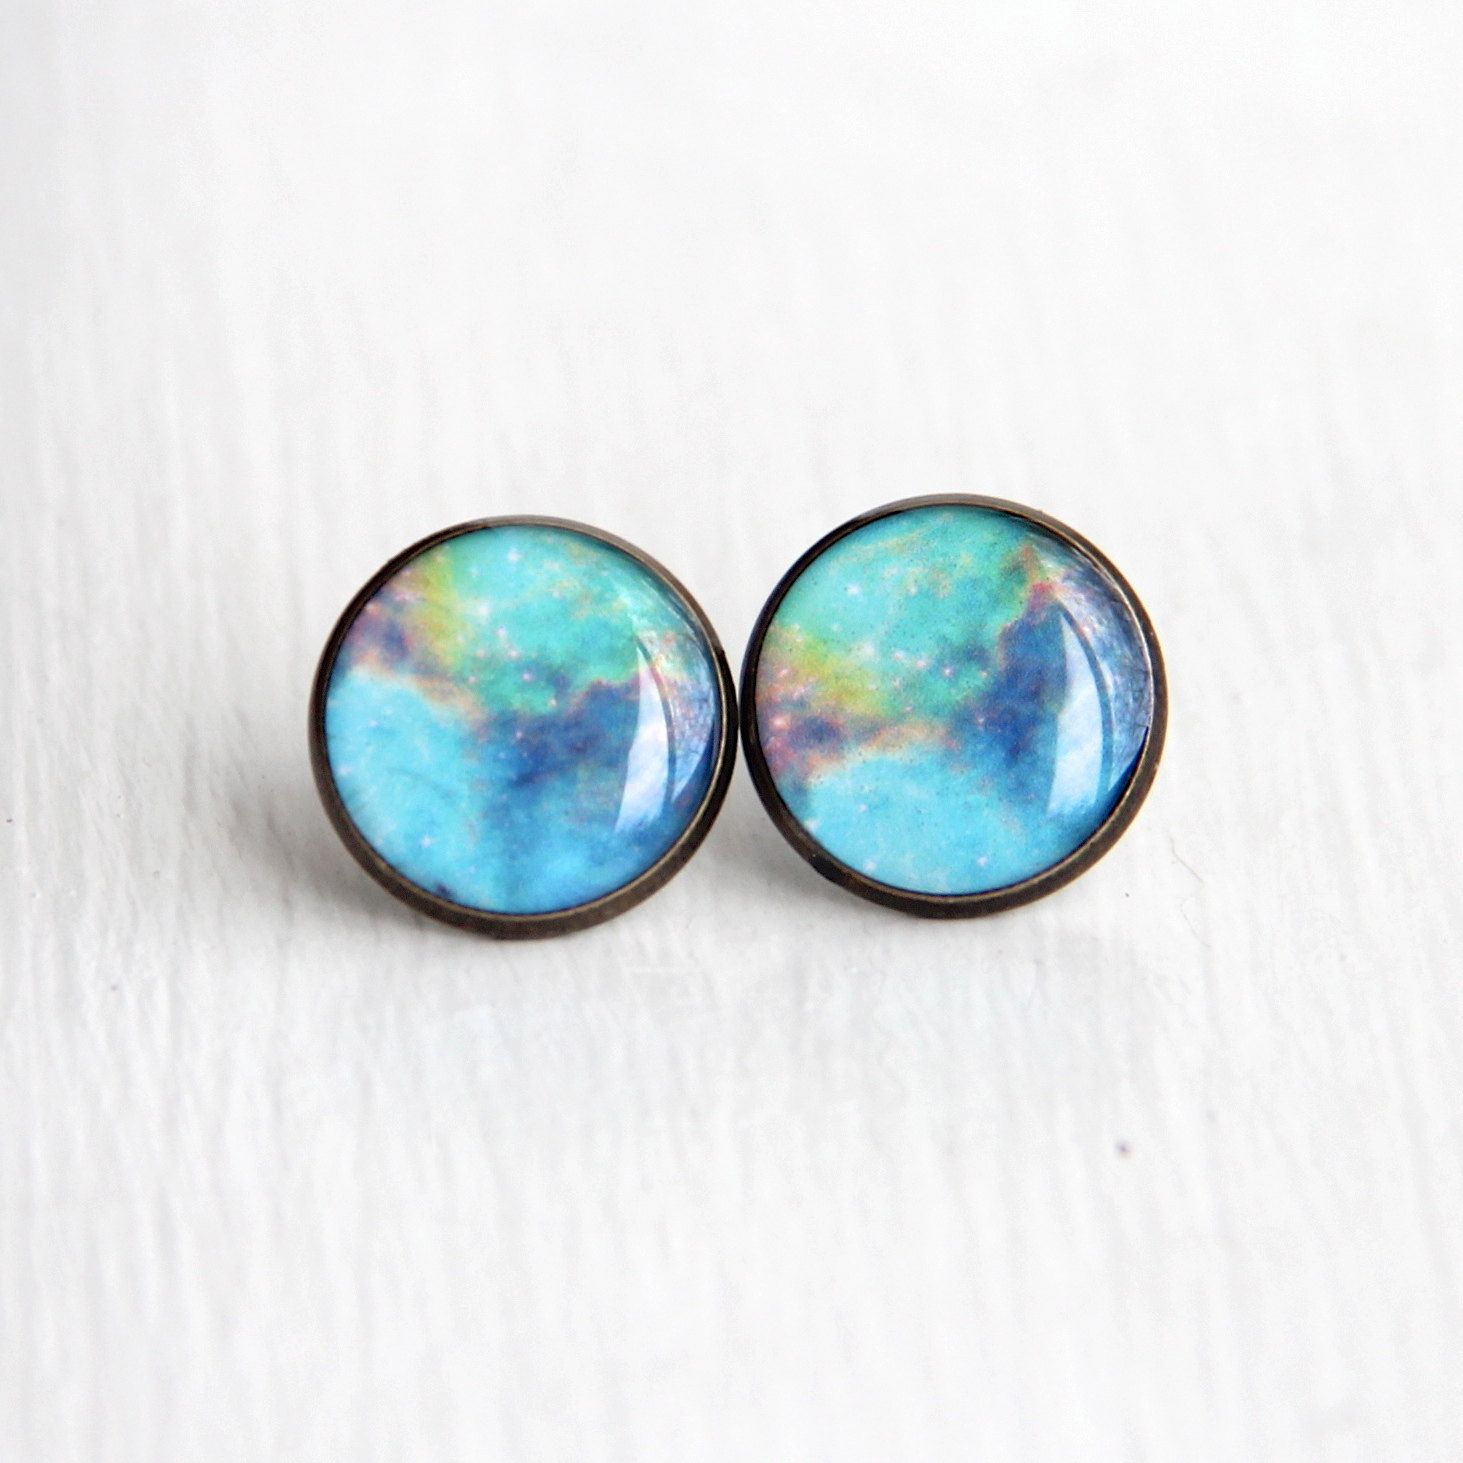 Nebula Jewelry, Space Earrings, Large Stud Earrings, Nerdy ...